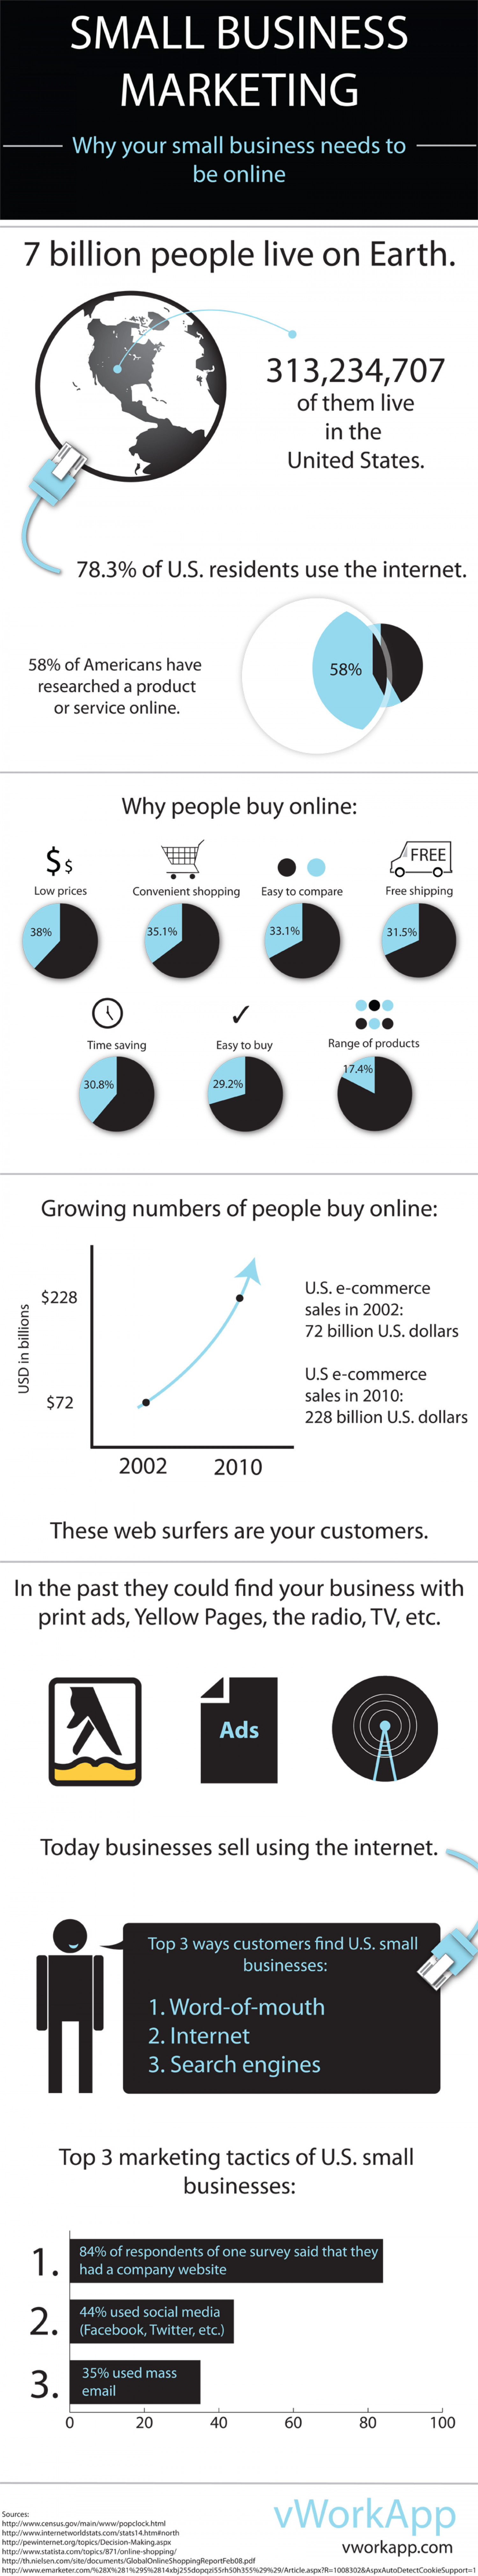 Why a small business needs to be online Infographic